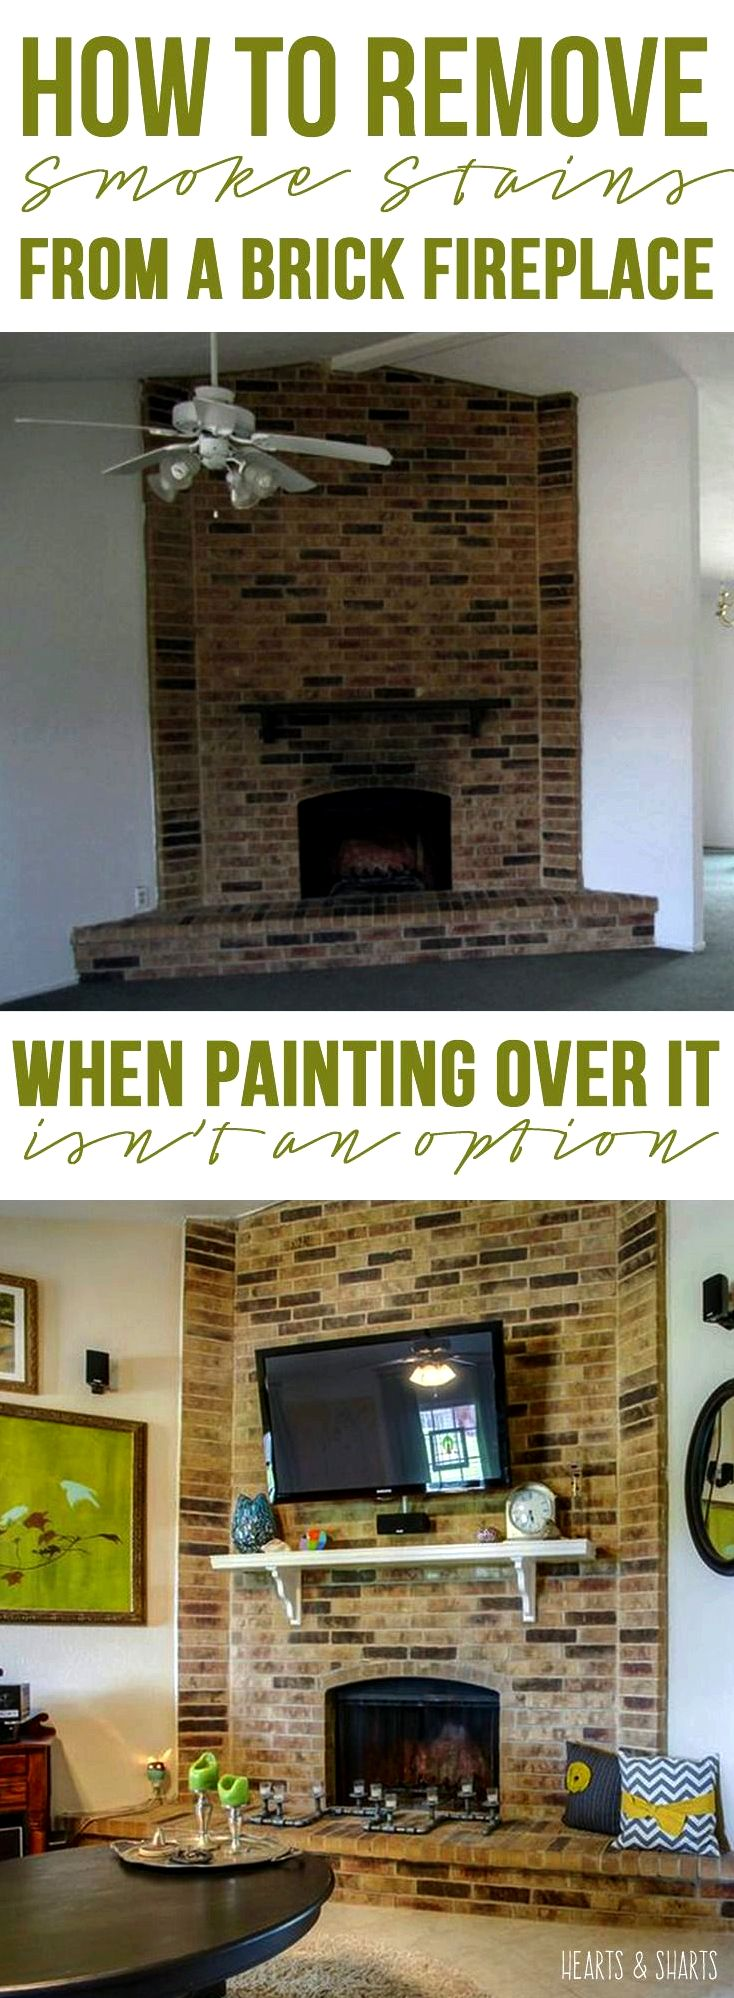 Stone hearth cleaning tips in your hearth